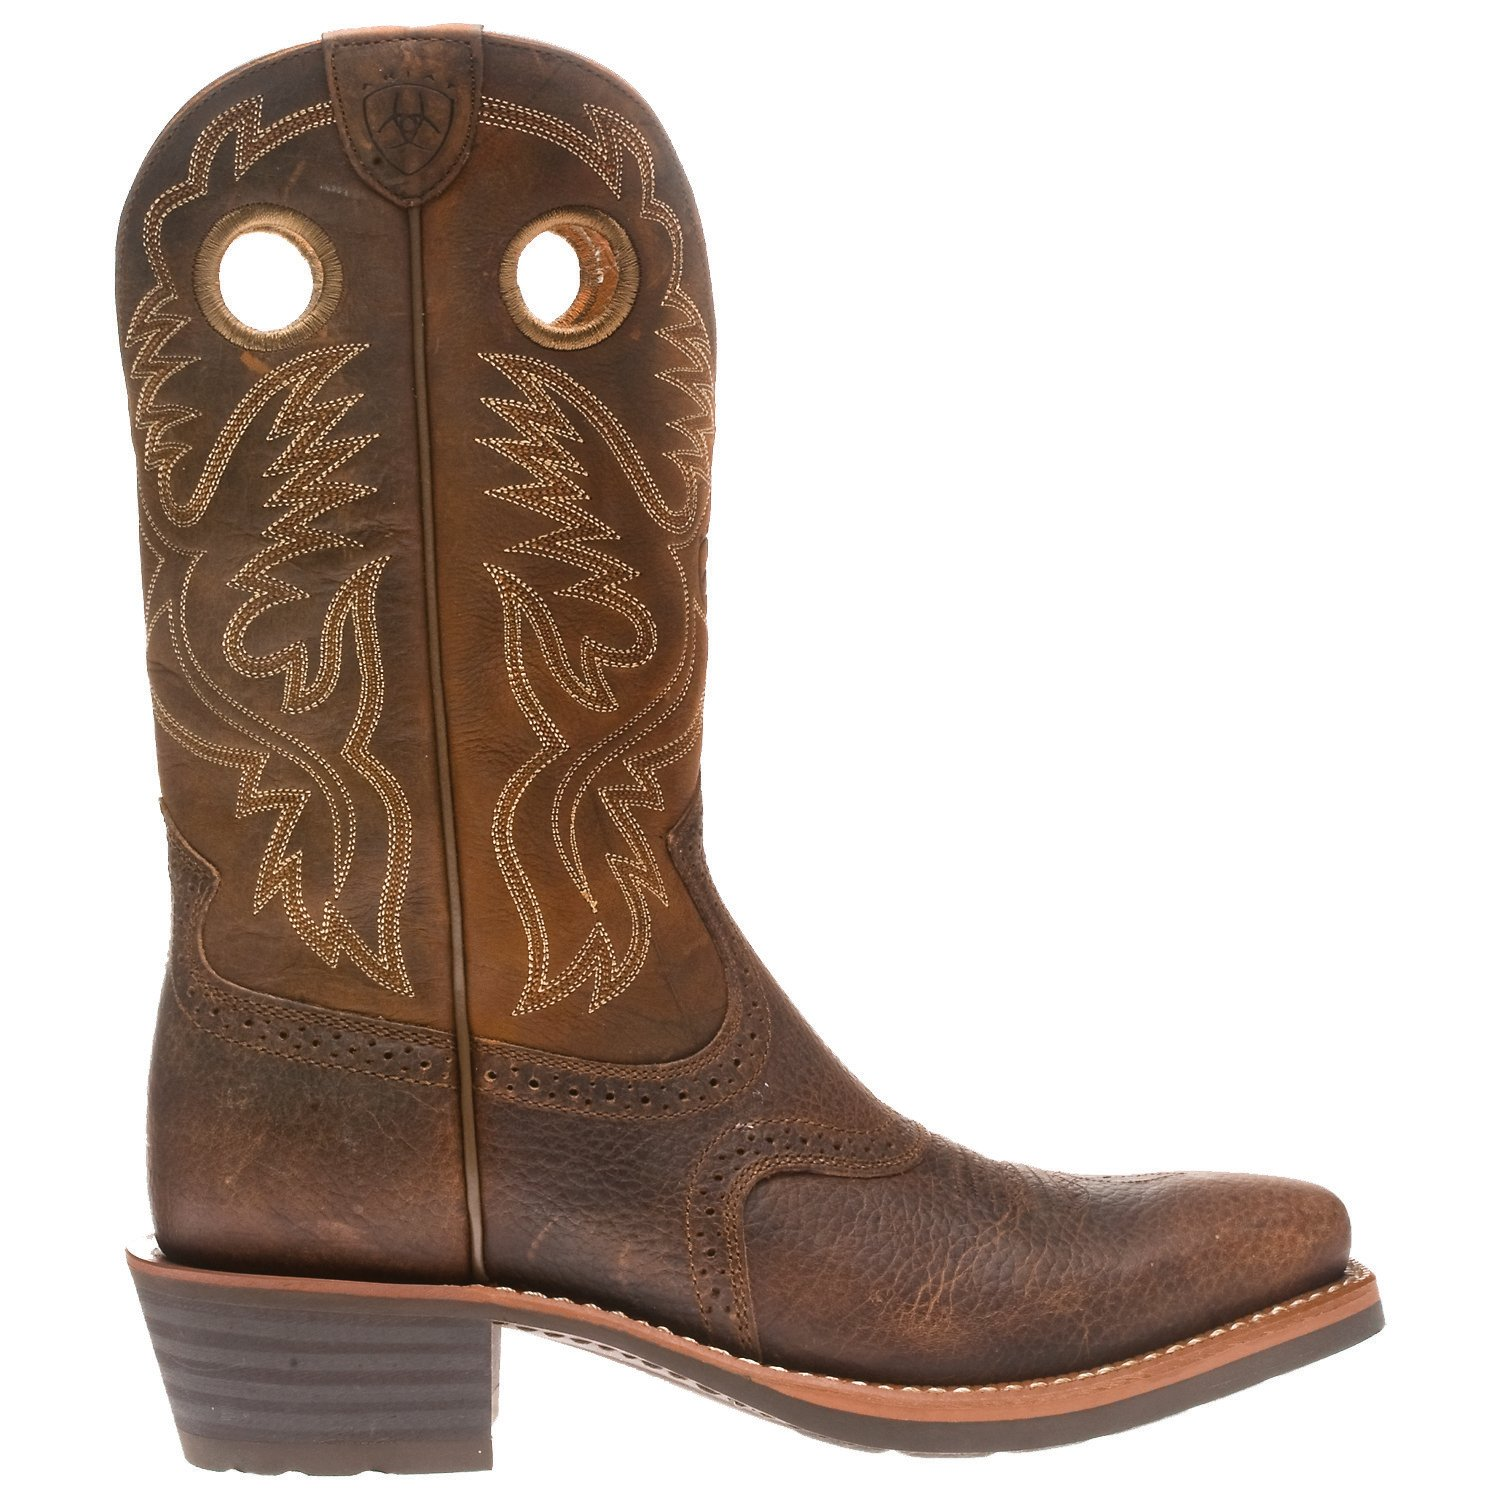 3c9555a9281d7 Display product reviews for Ariat Men's Heritage Roughstock Western Boots